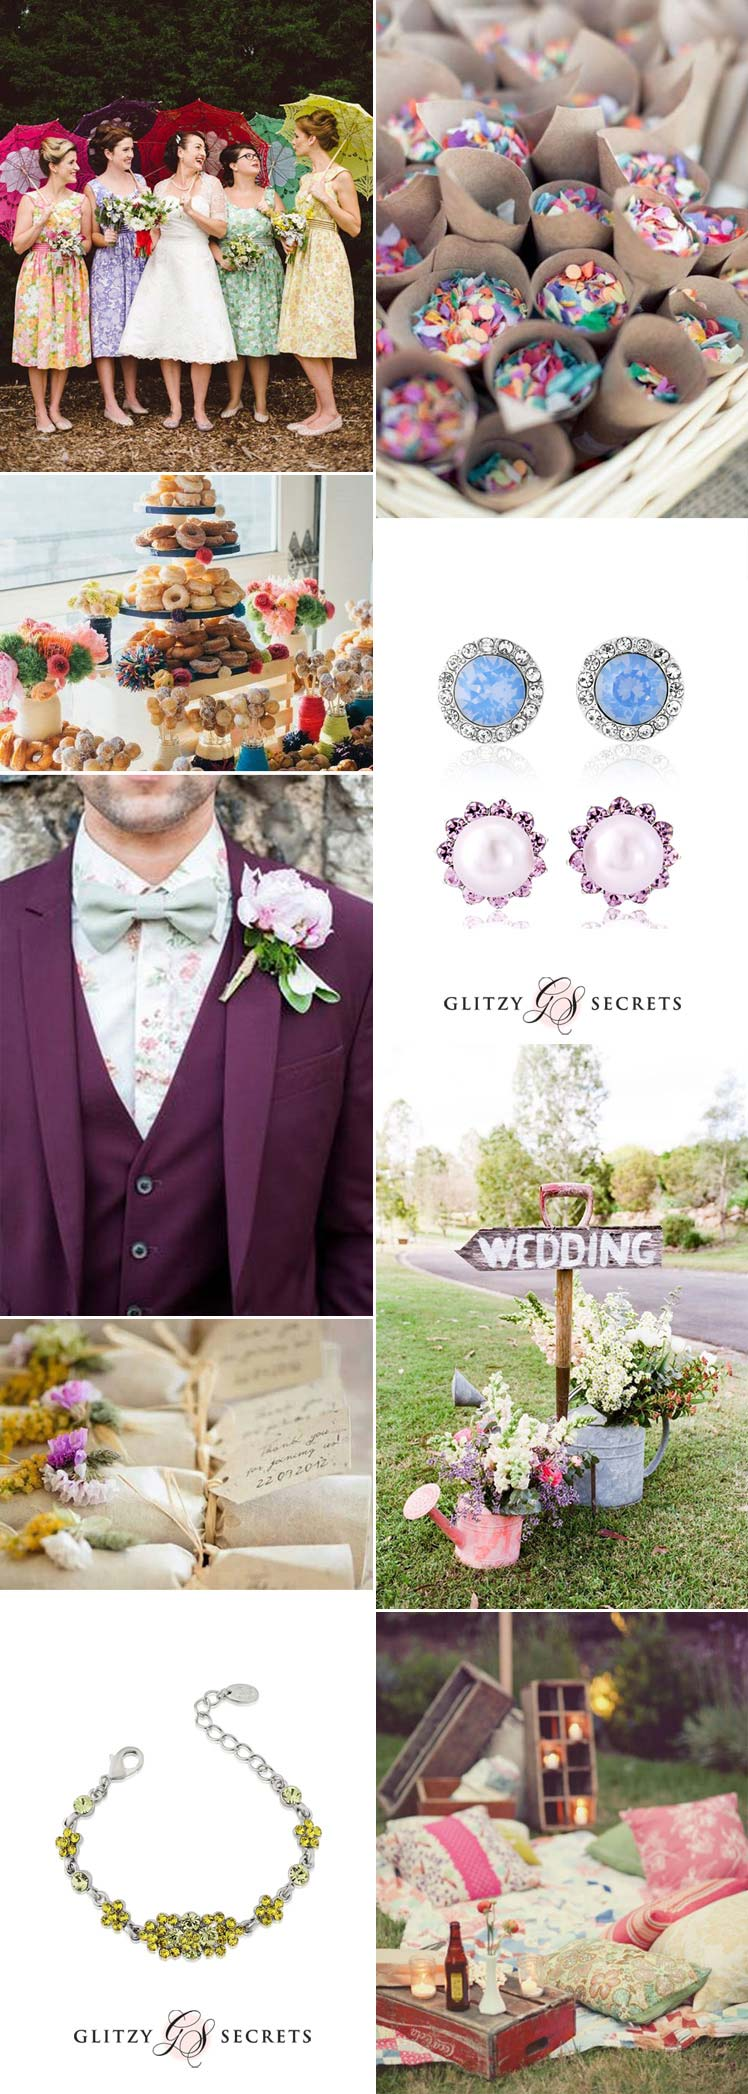 Wonderful spring wedding inspiration